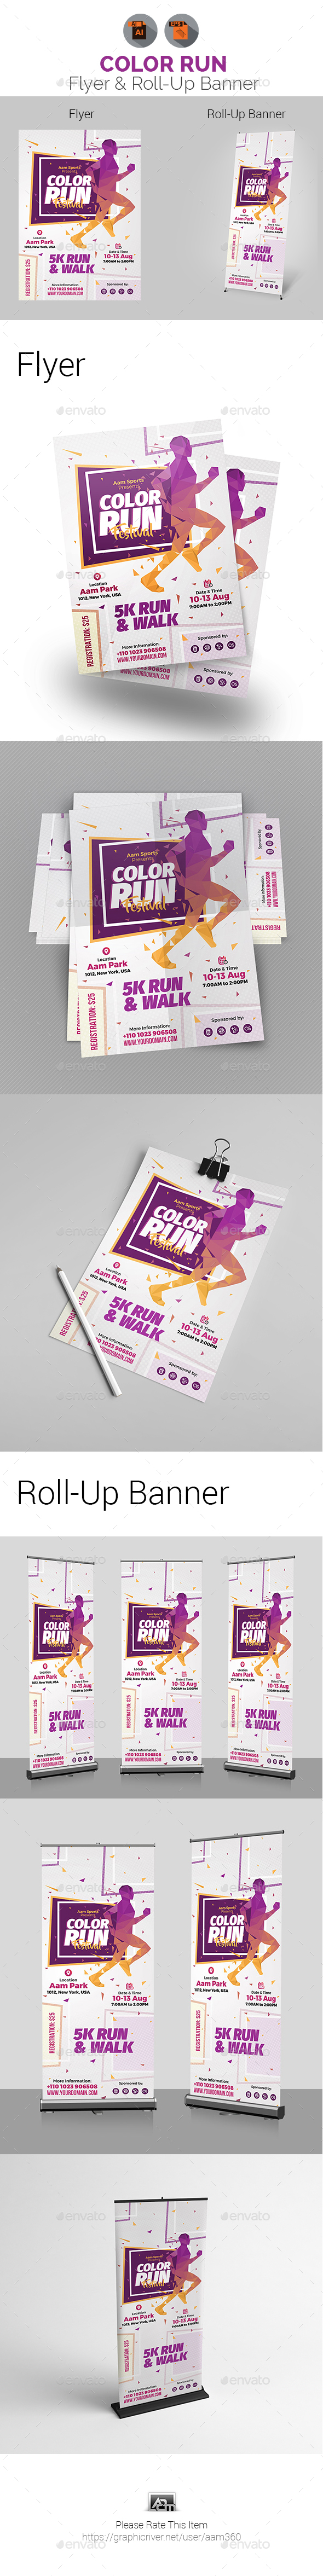 GraphicRiver Color Run Festival Flyer & Roll-Up Banner 20976845